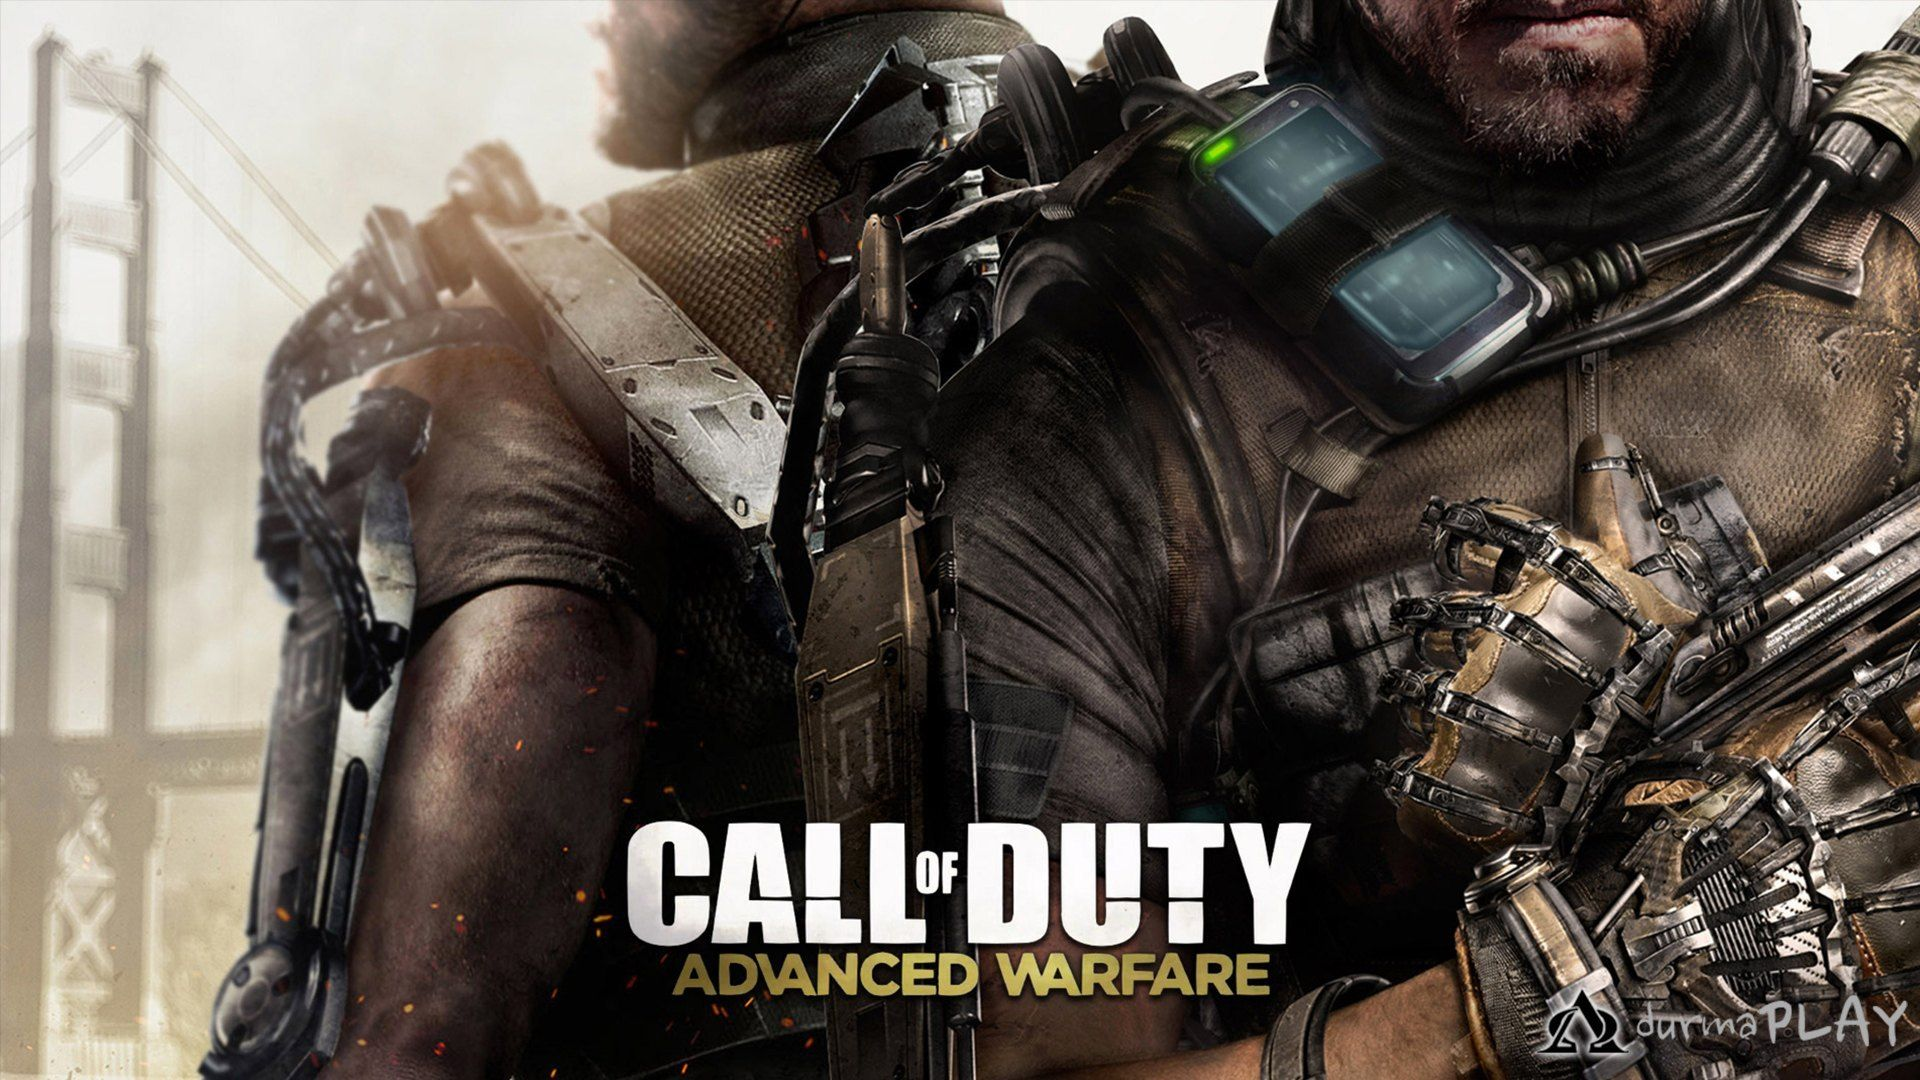 Exo Suit Changes The Game Call Of Duty Advanced Warfare Review Call Of Duty Advanced Warfare Call Of Duty Zombies